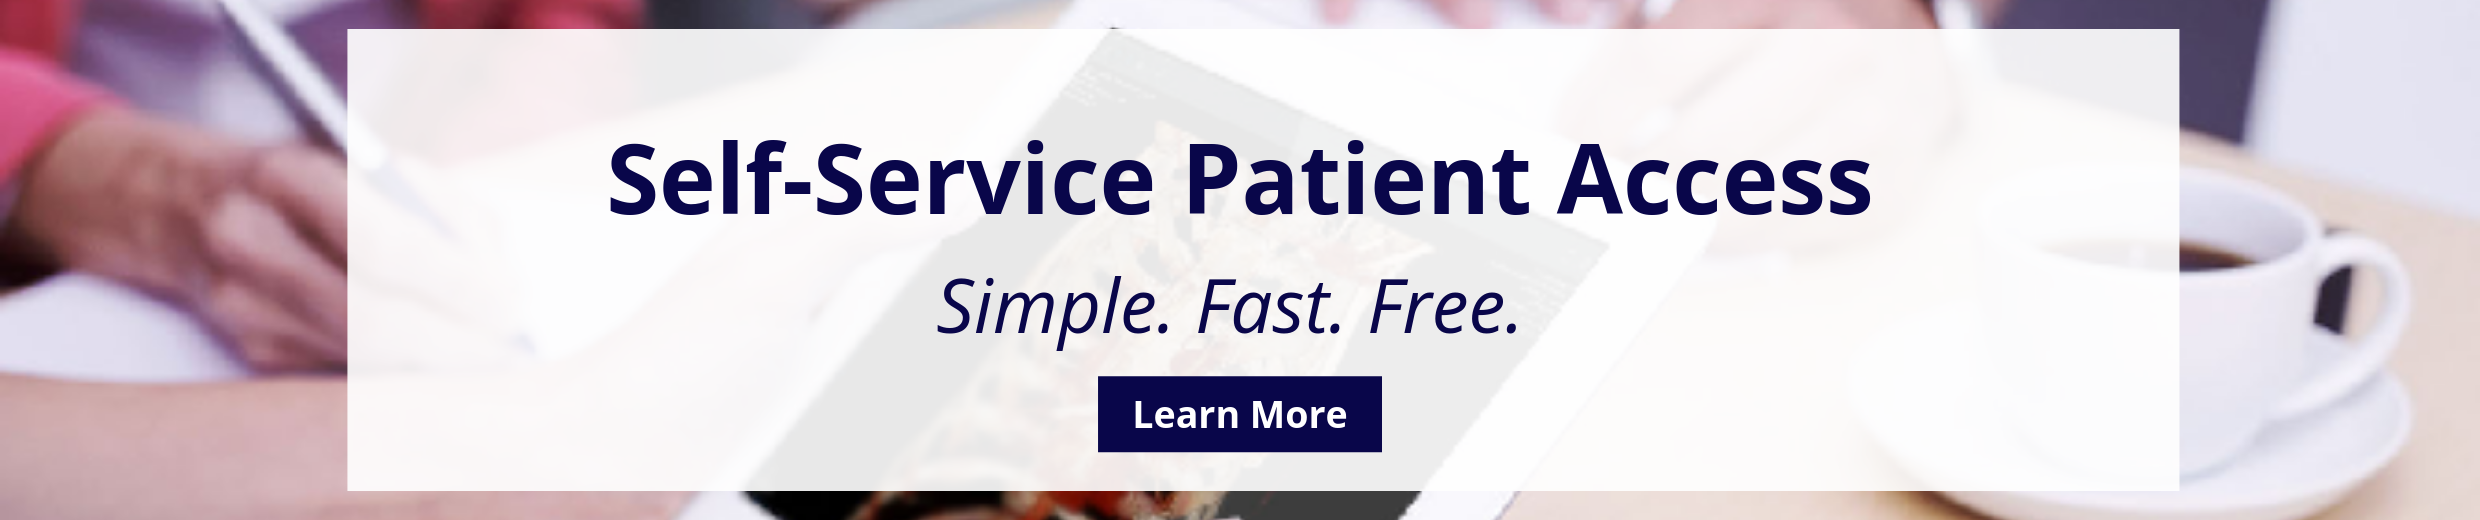 Patient Access to medical Images can be simple, fast and free for providers